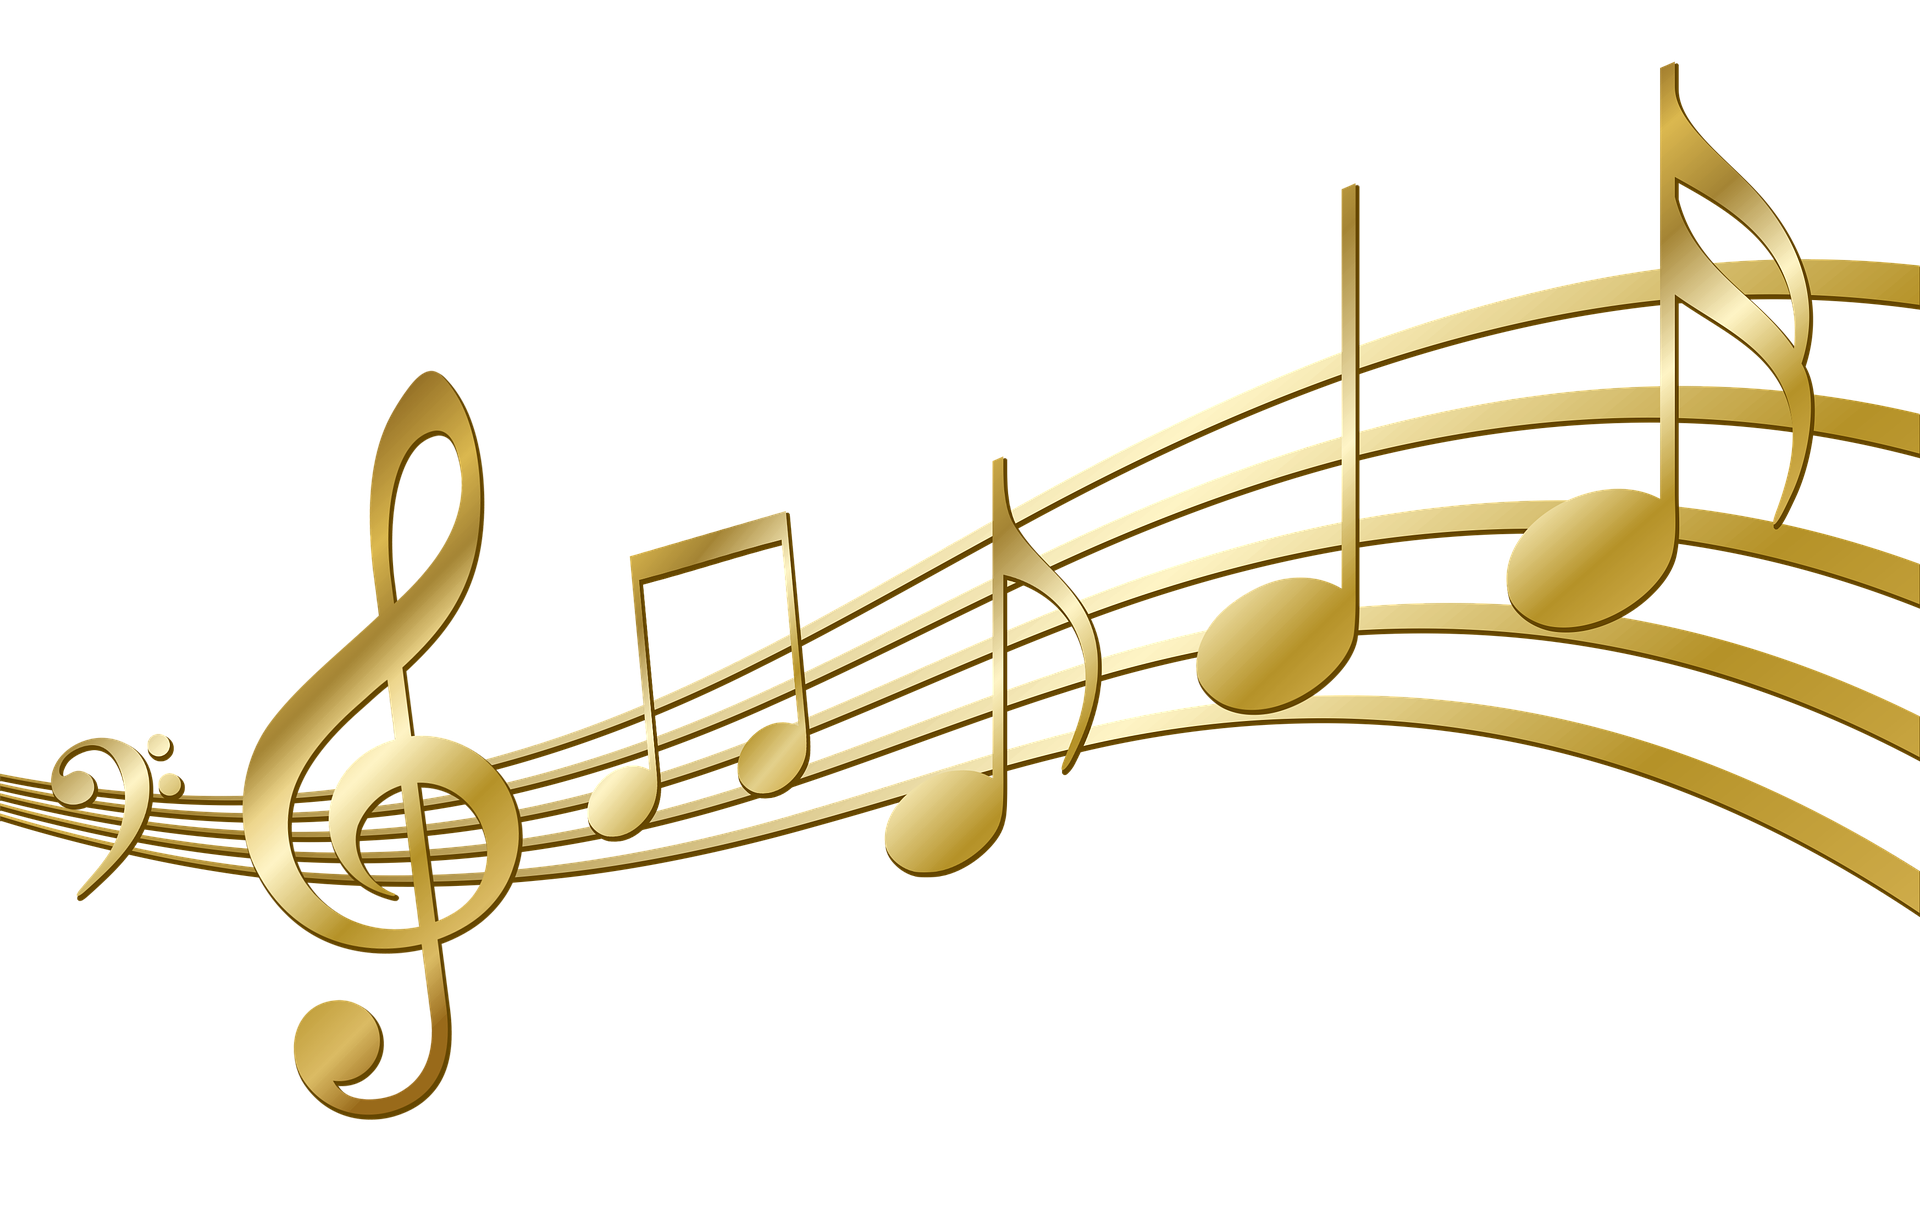 Gold Musical Notes Typography 2 By Gdj Music Wallpaper Art Music Music Pictures